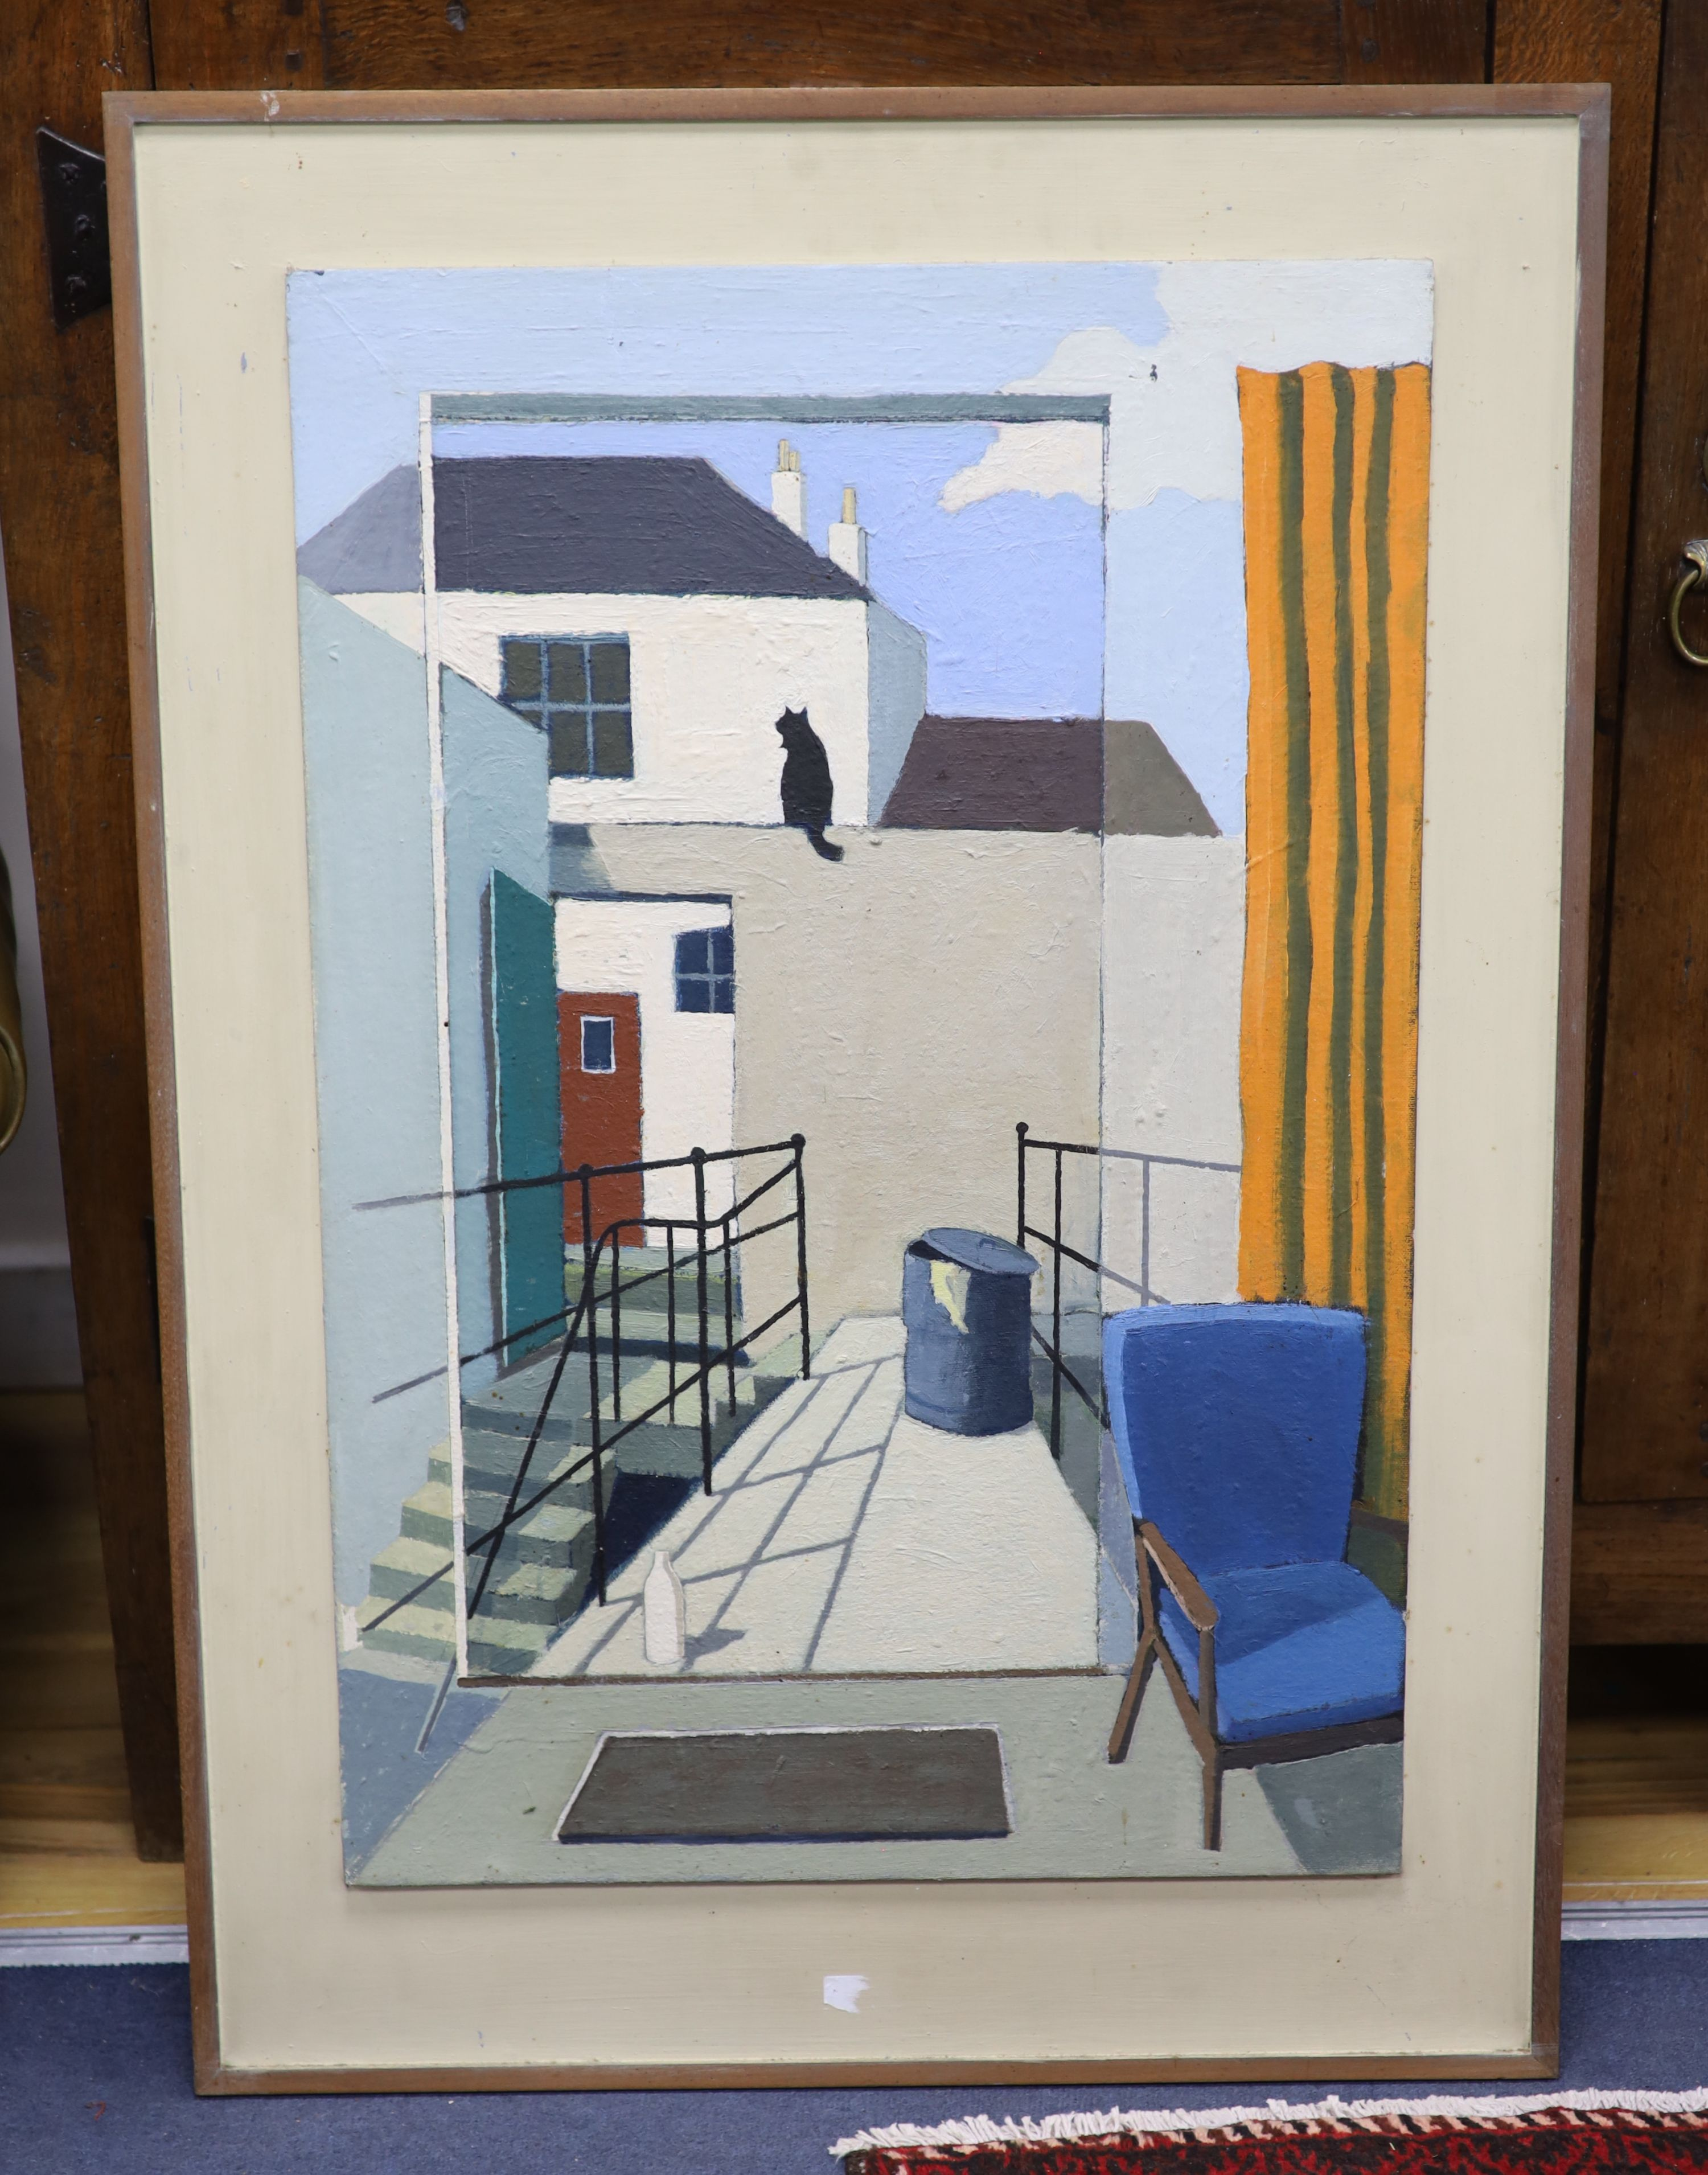 Michael Alford, oil on board, Black cat in a back yard, signed verso, 76 x 51cm - Image 2 of 2